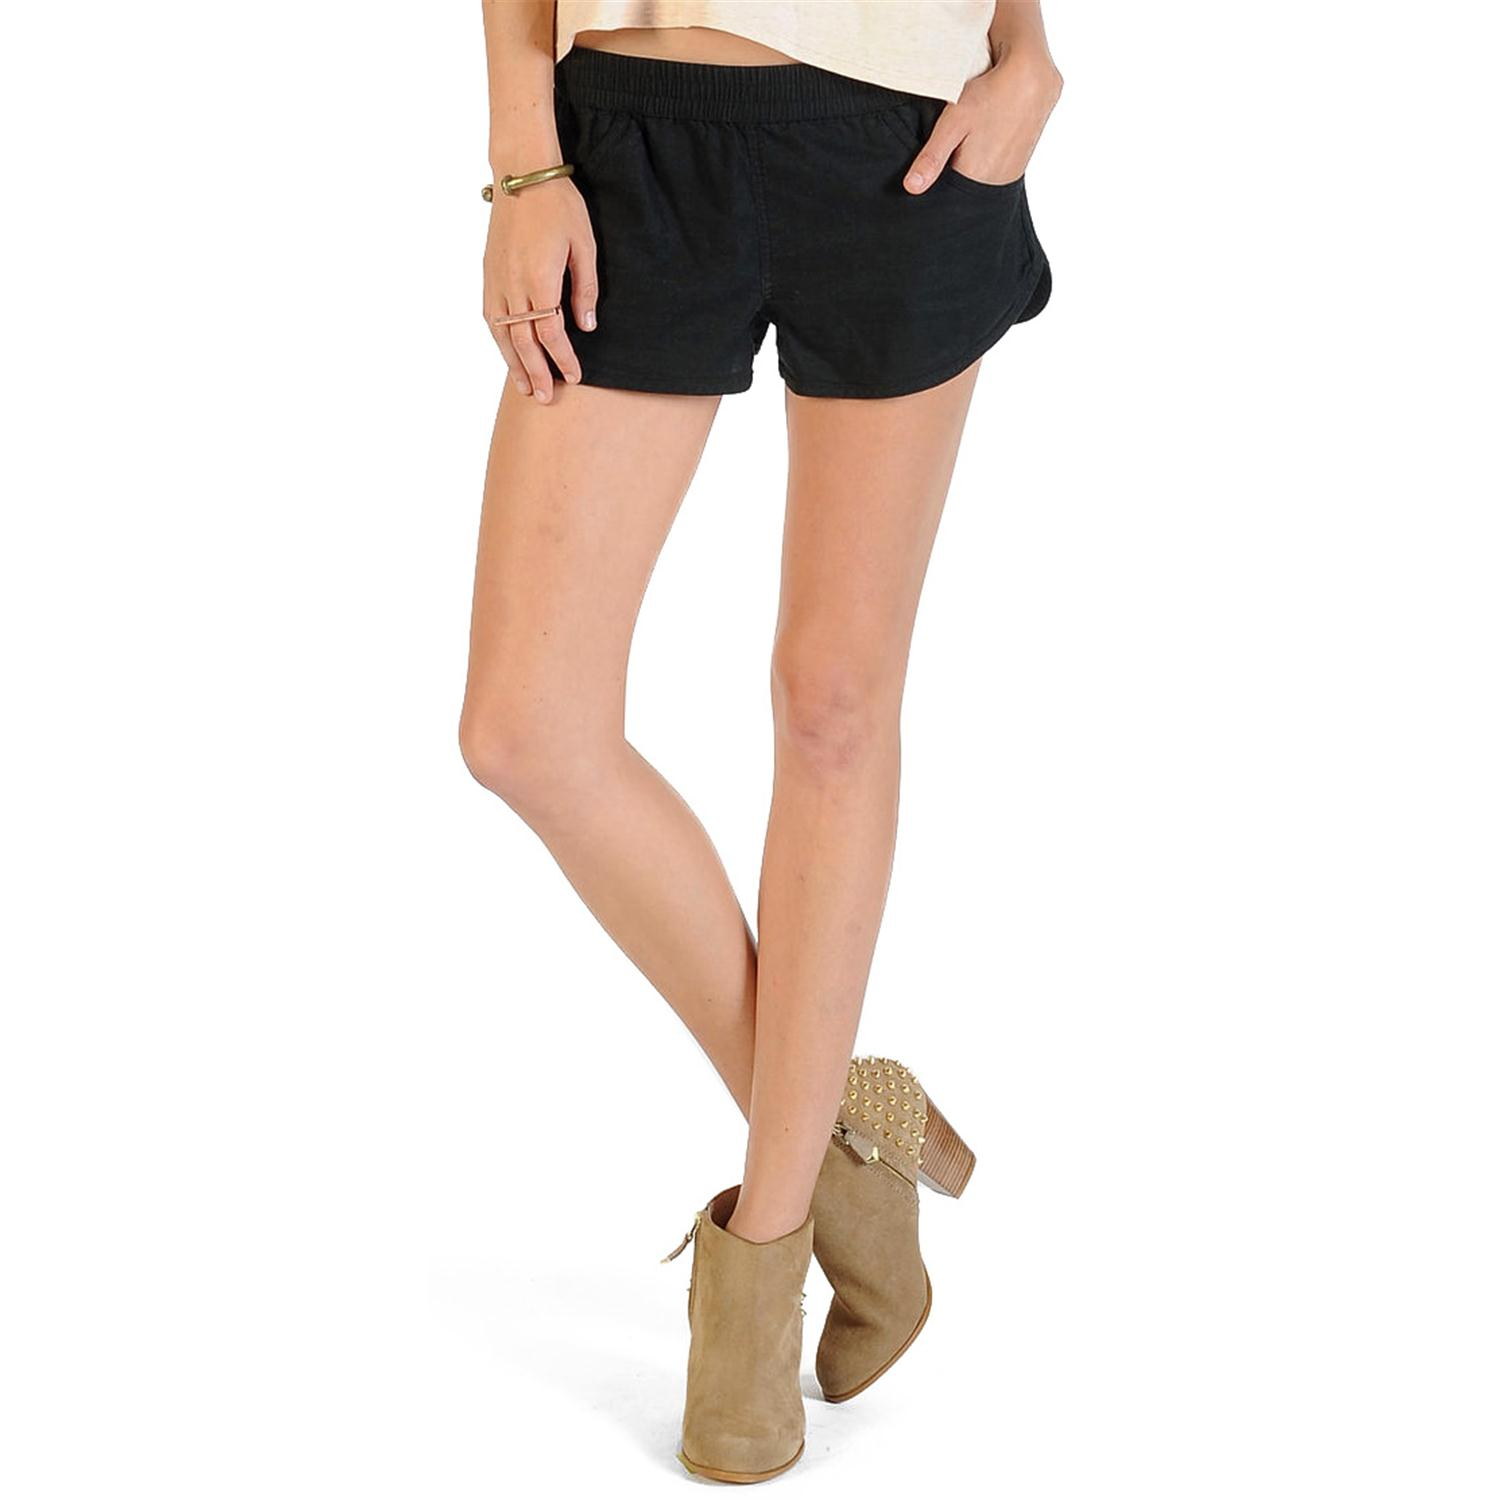 Express has the women's denim, soft & high waisted shorts you can wear in the warmer weather. Pair these with a One Eleven t shirt for a casual look, or dress them up with a cute off the shoulder top.